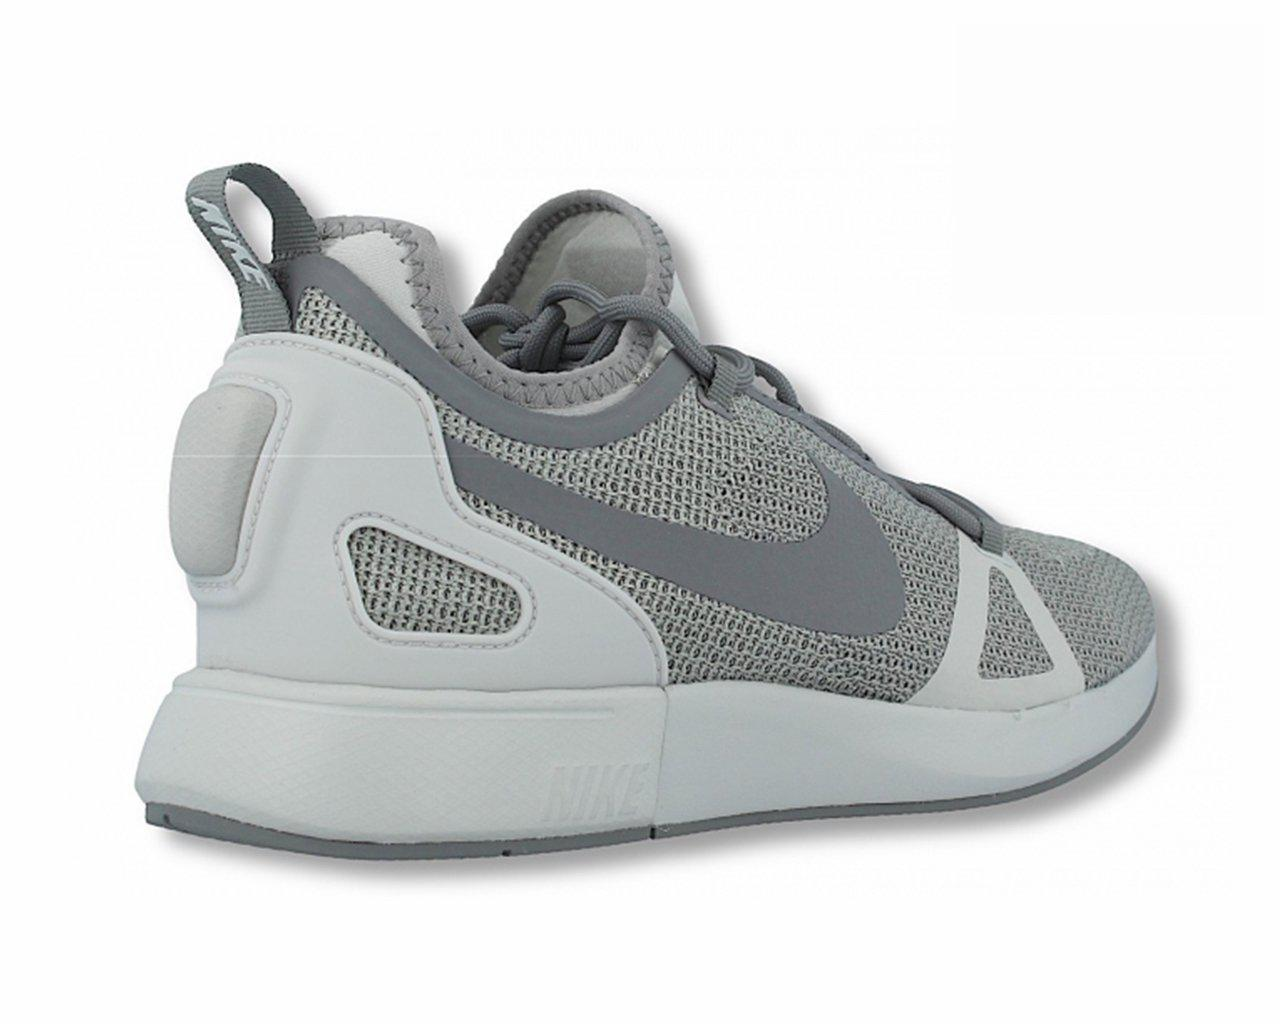 Nike Rubber Duel Racer Pale Grey Trainers in Grey for Men